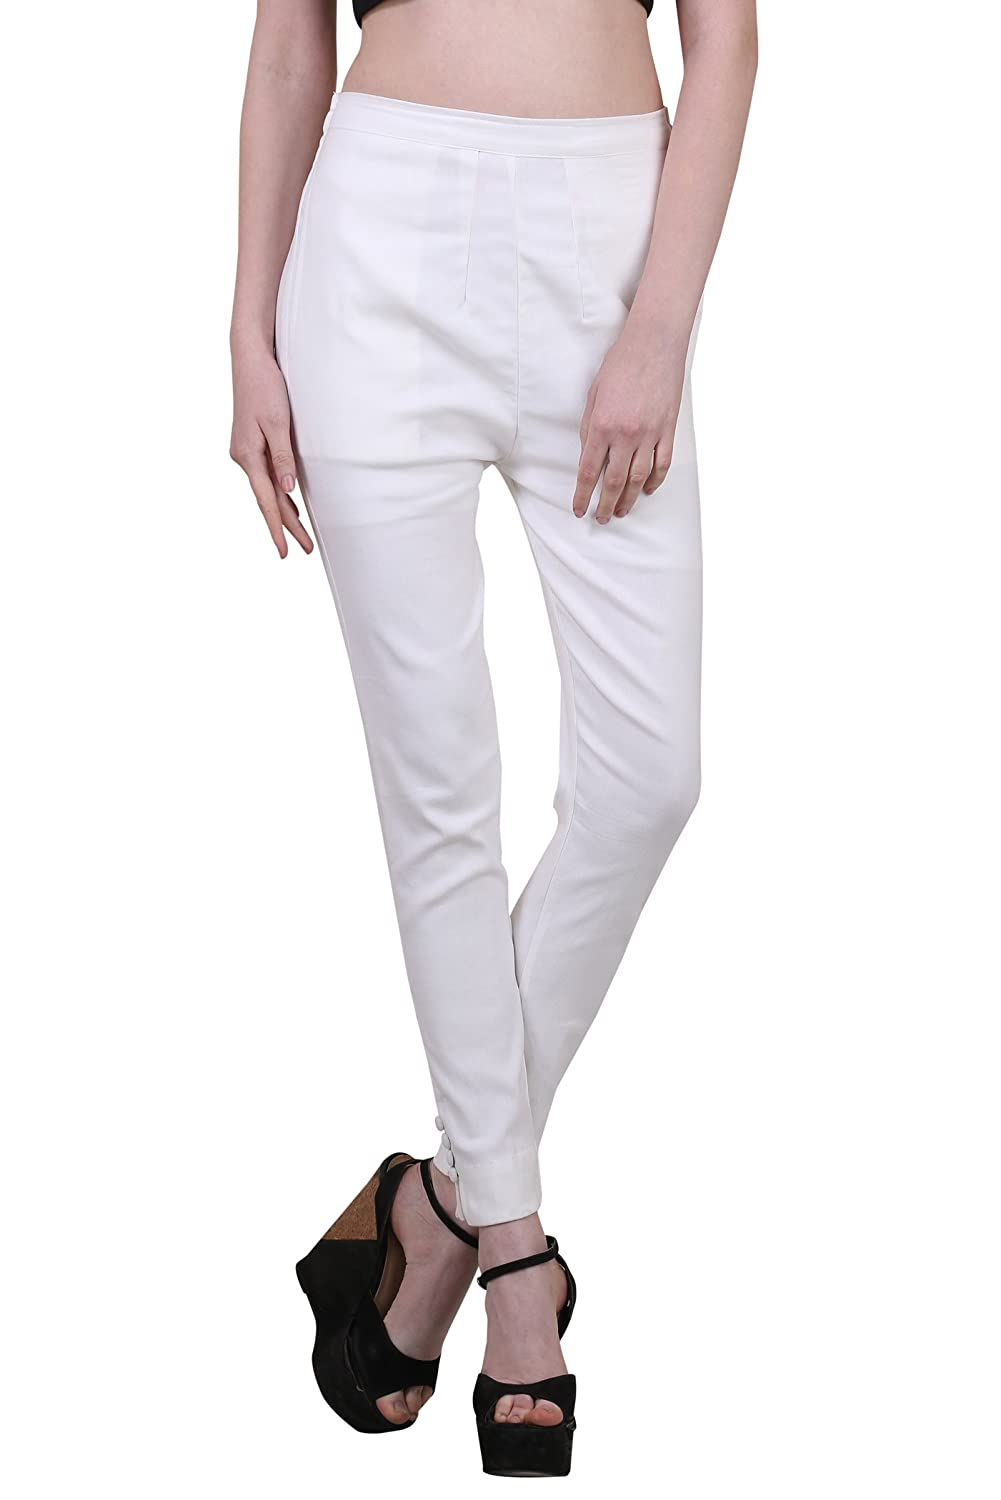 e5ecaf426e0d19 Shararat Fashionable Lycra Stretchable Slim Fit Straight Casual Cigarette  Pants For Girls / Ladies / Women: Amazon.in: Clothing & Accessories